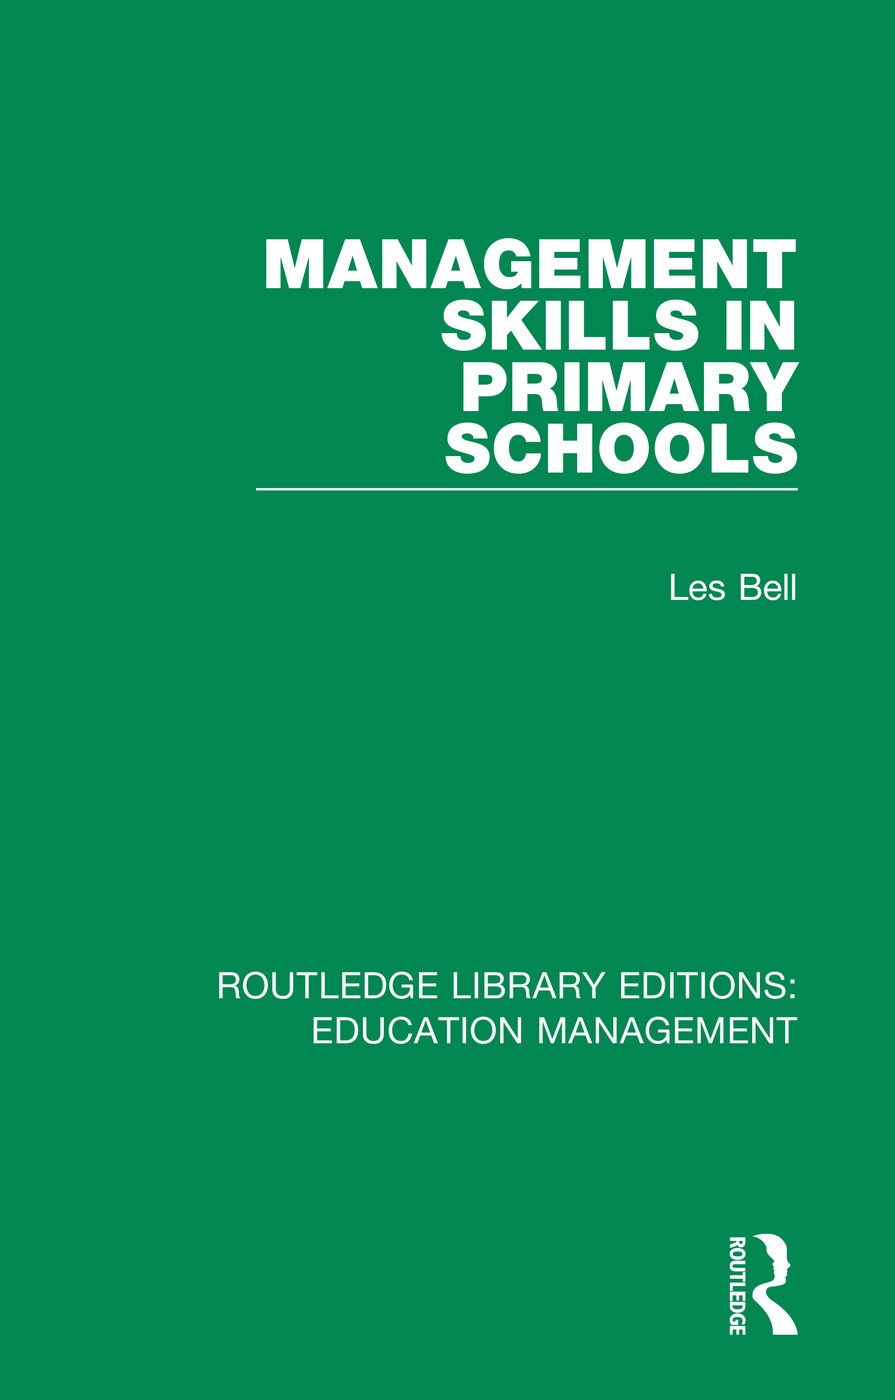 Management Skills in Primary Schools book cover